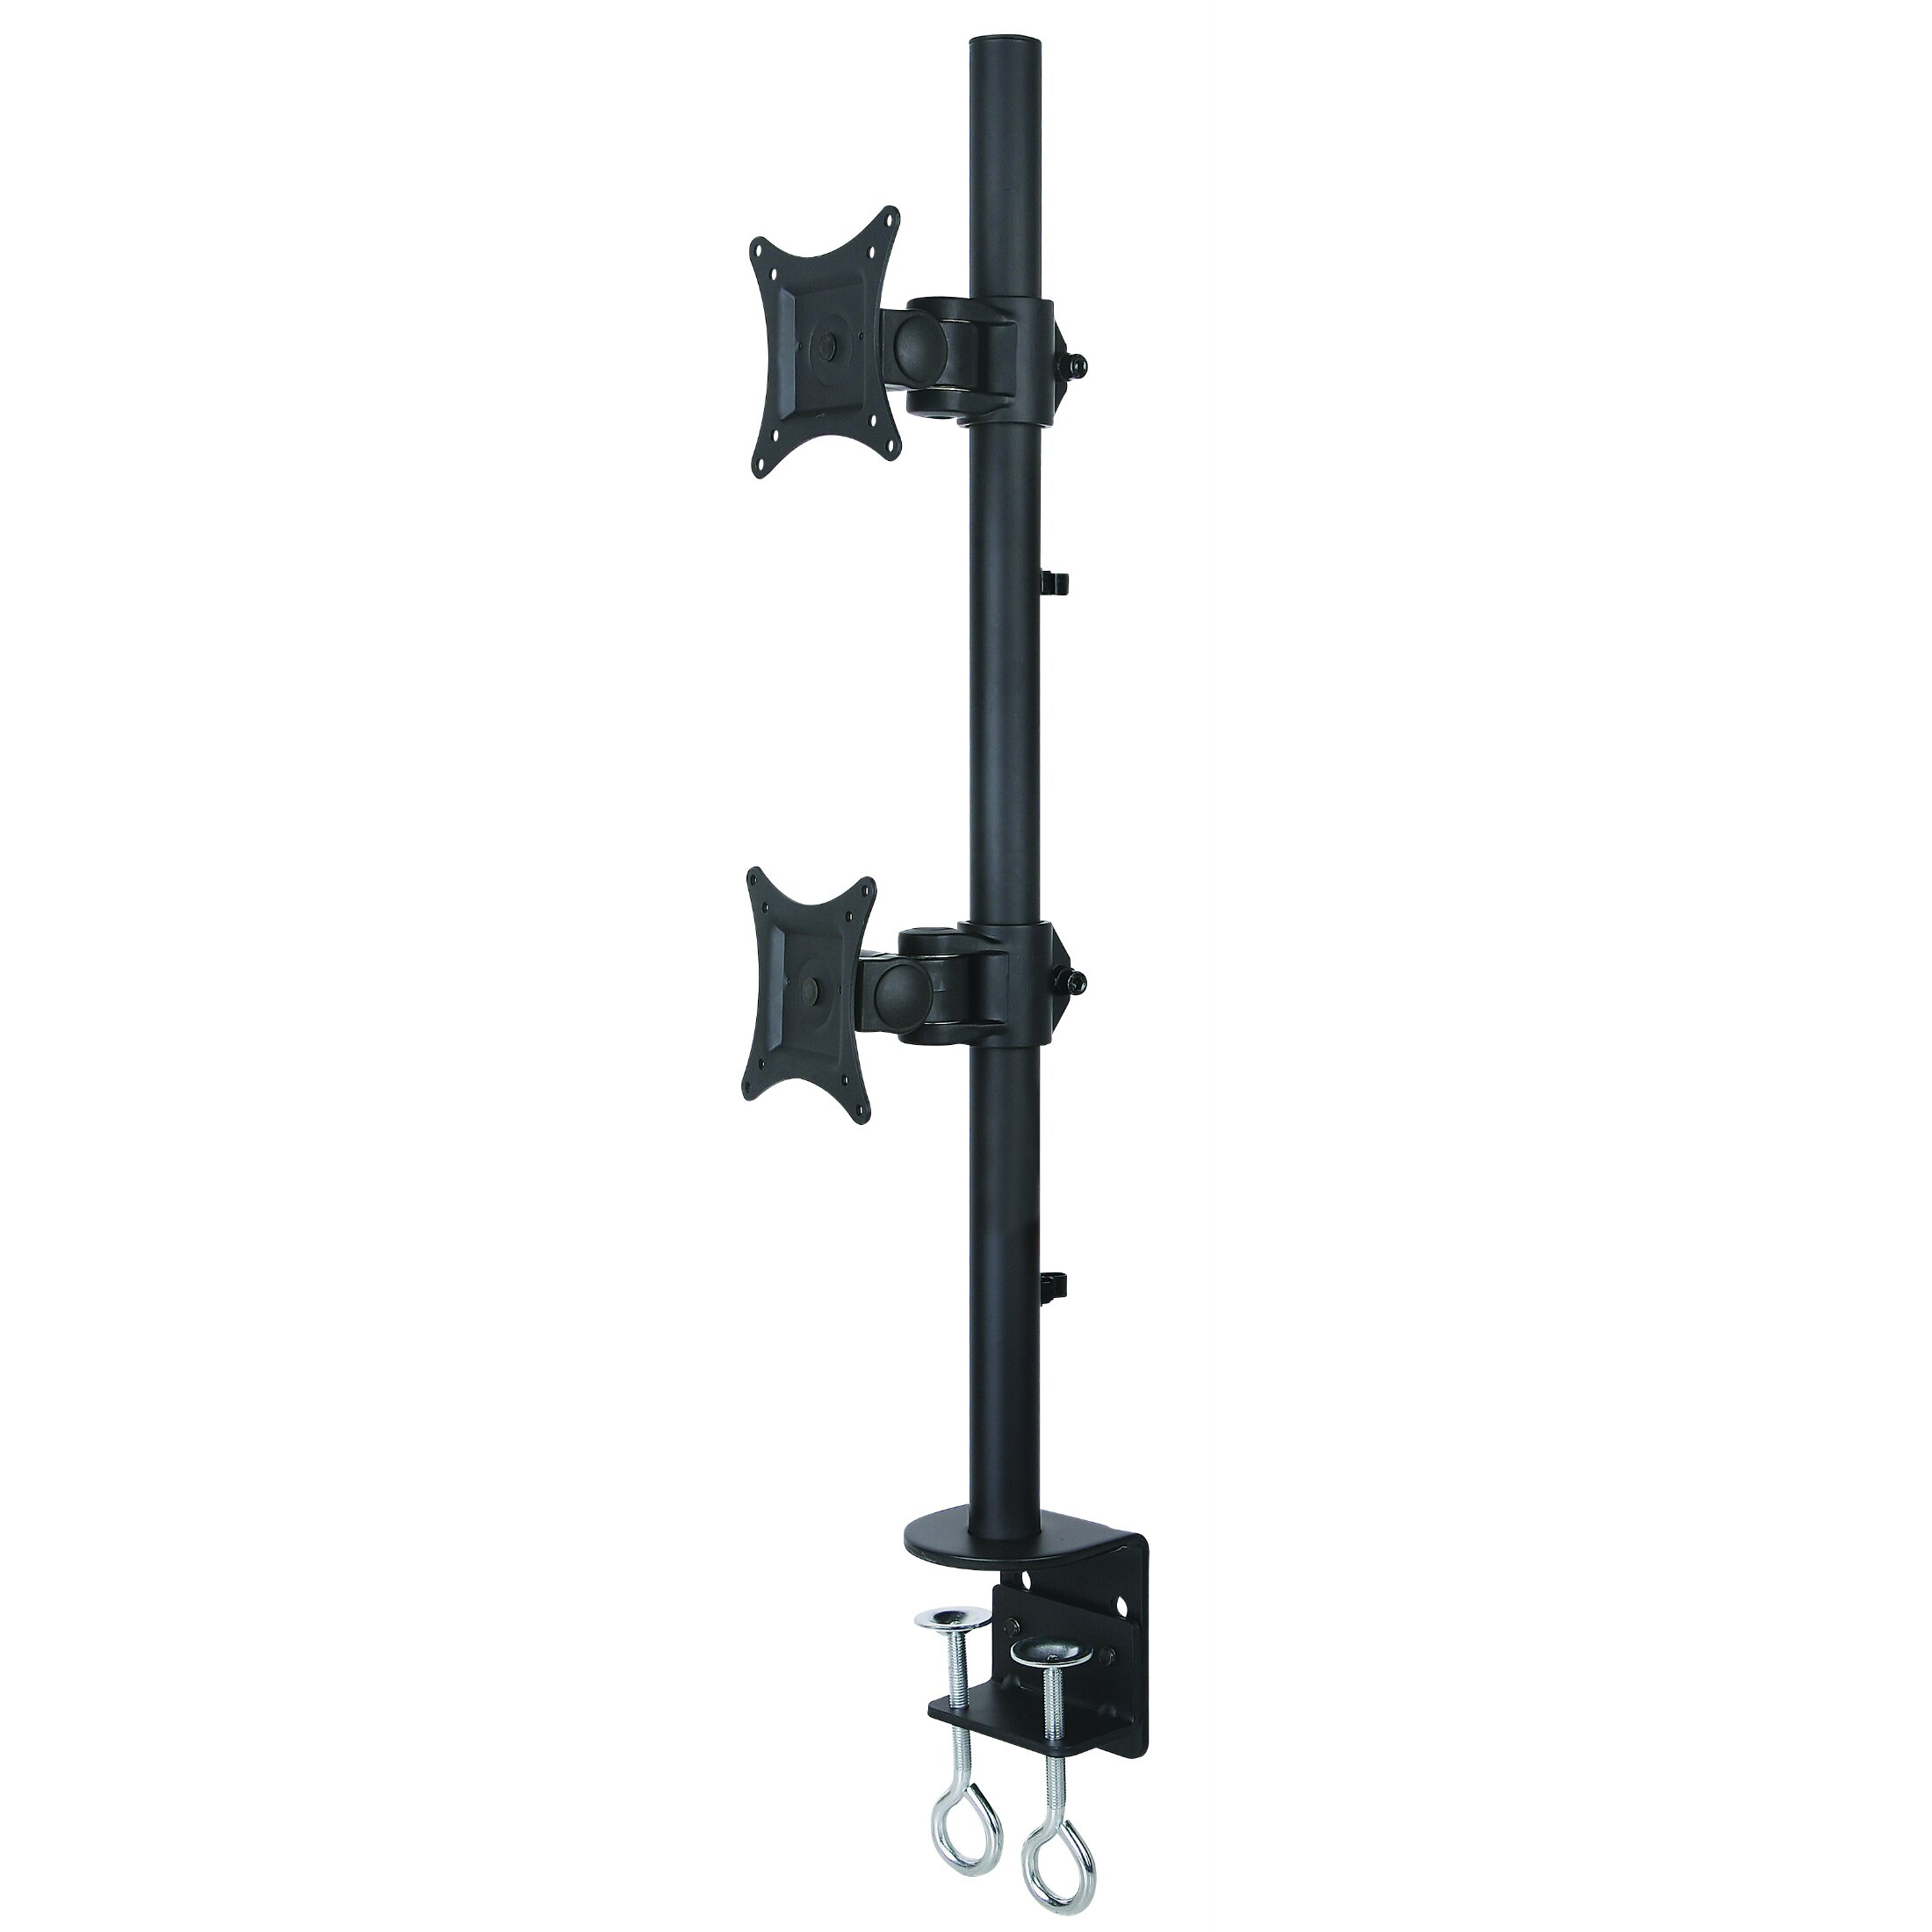 Dual LCD Monitor Heavy Duty Stacked Vertical 2 Screens  : Vivo Dual LCD Monitor Height Adjustable 2 Screen Desk Mount Stand STAND V002T Amazon Desk Chair Mat from www.wayfair.com size 2200 x 2200 jpeg 168kB